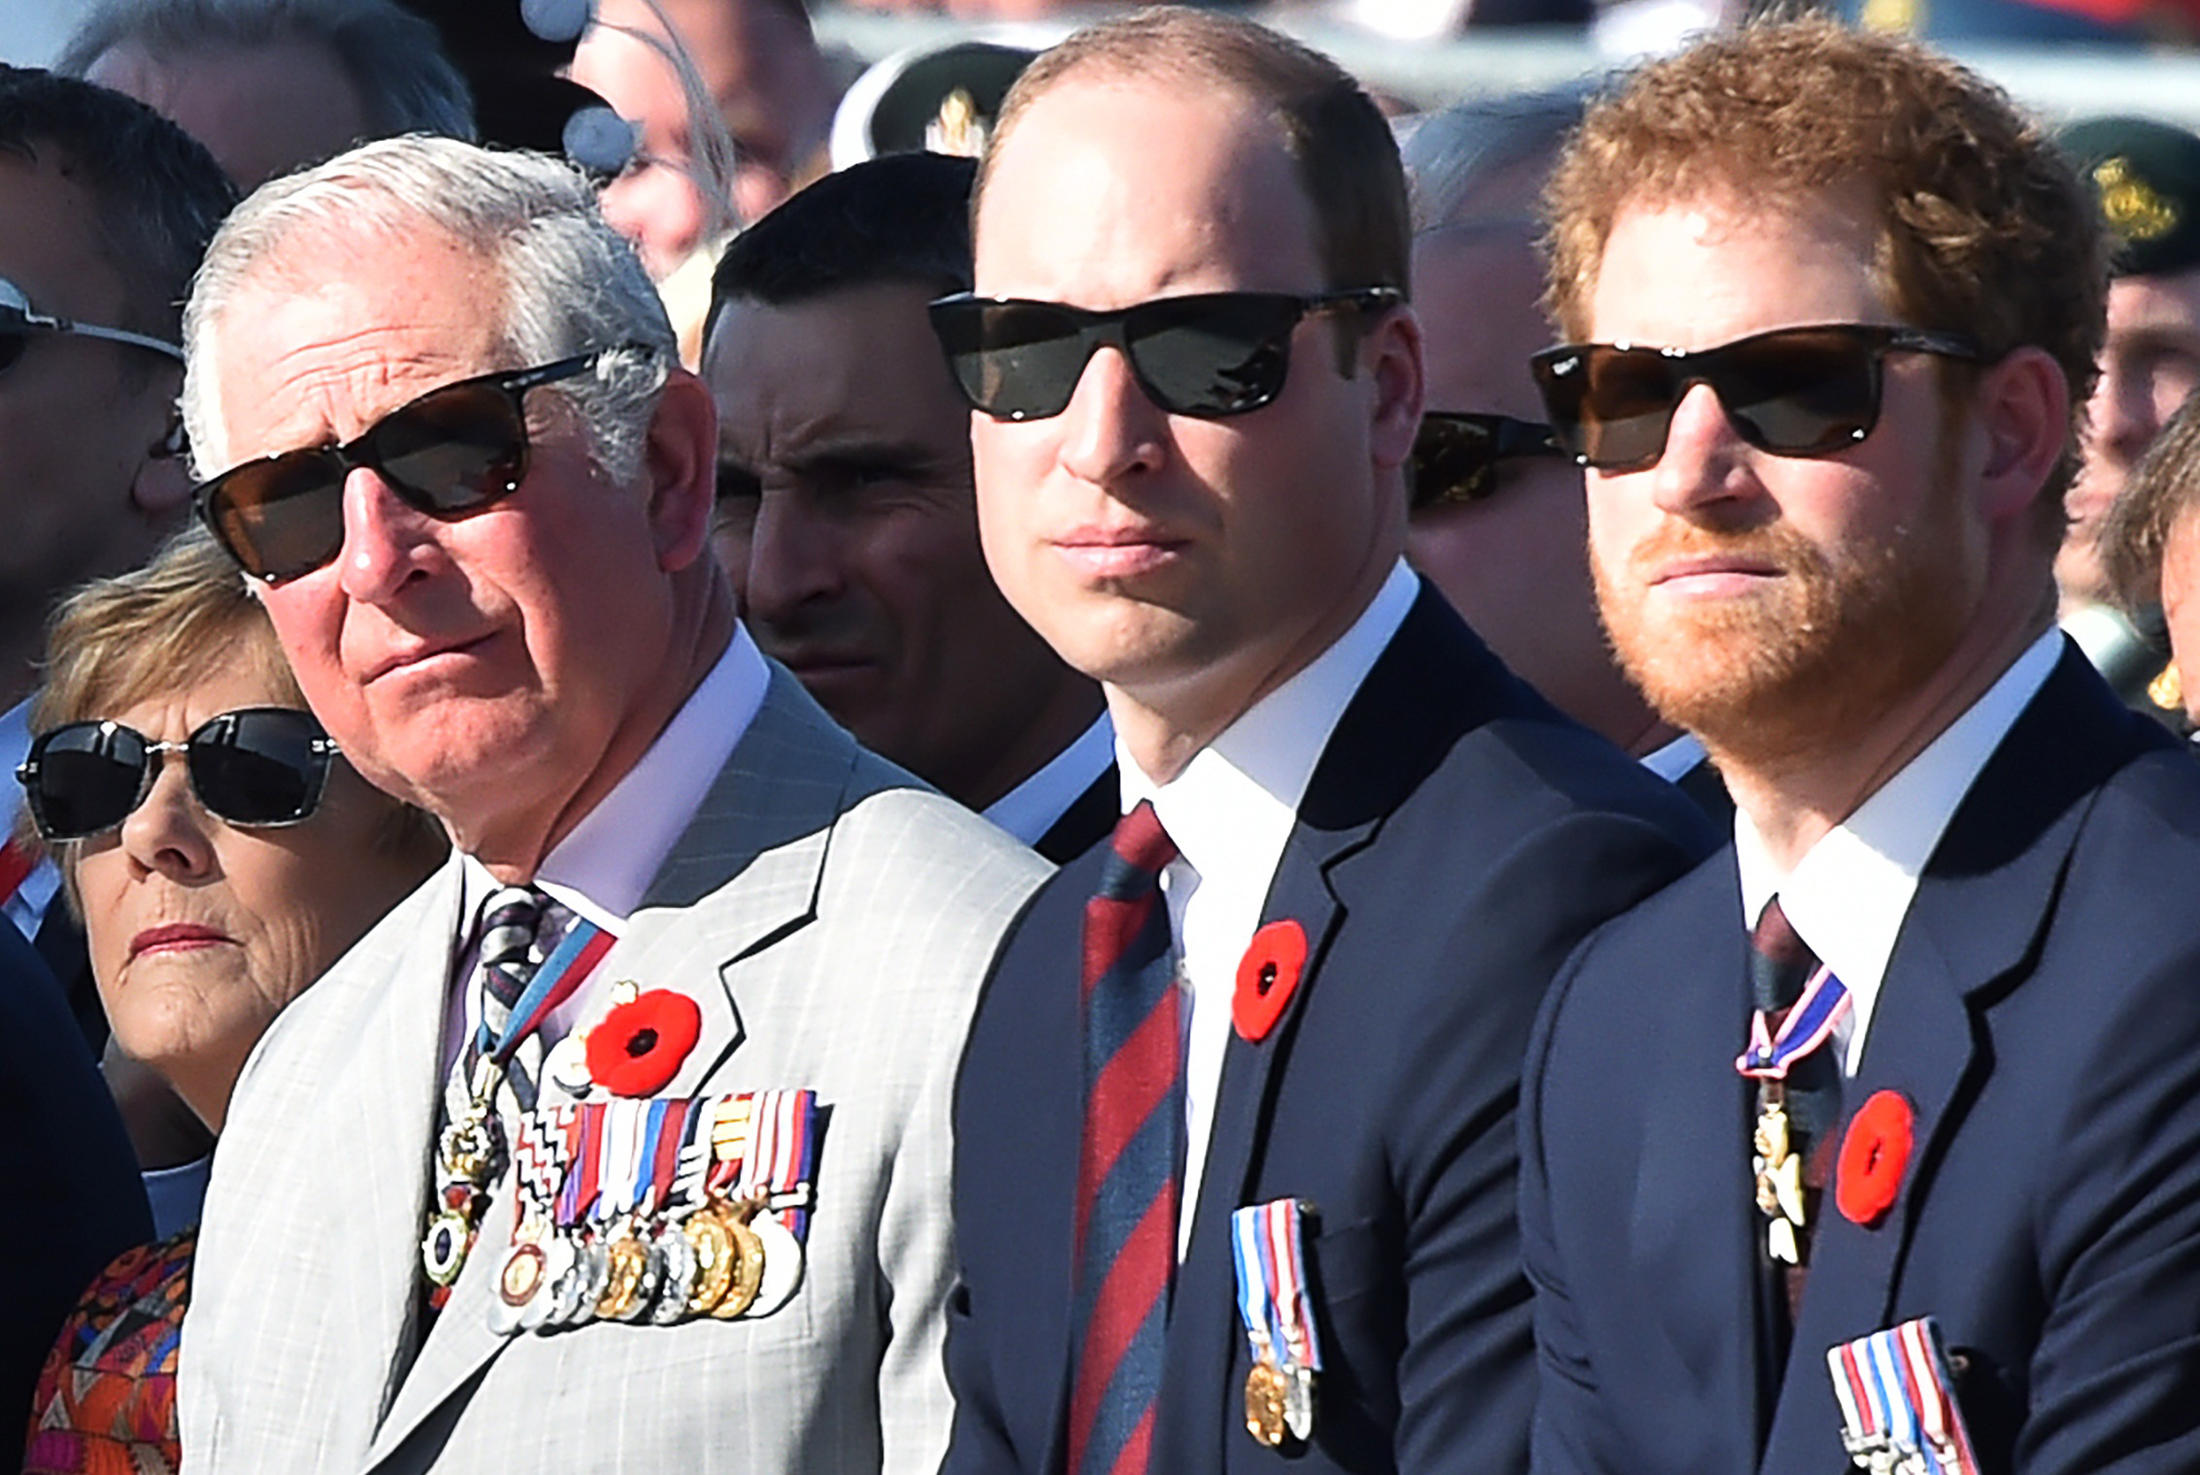 Britain's Prince Charles, Prince William and Prince Harry attend a commemoration ceremony at the Canadian National Vimy Memorial during a commemoration ceremony to mark the 100th anniversary of the Battle of Vimy Ridge, in northern France, on April 9, 2017.